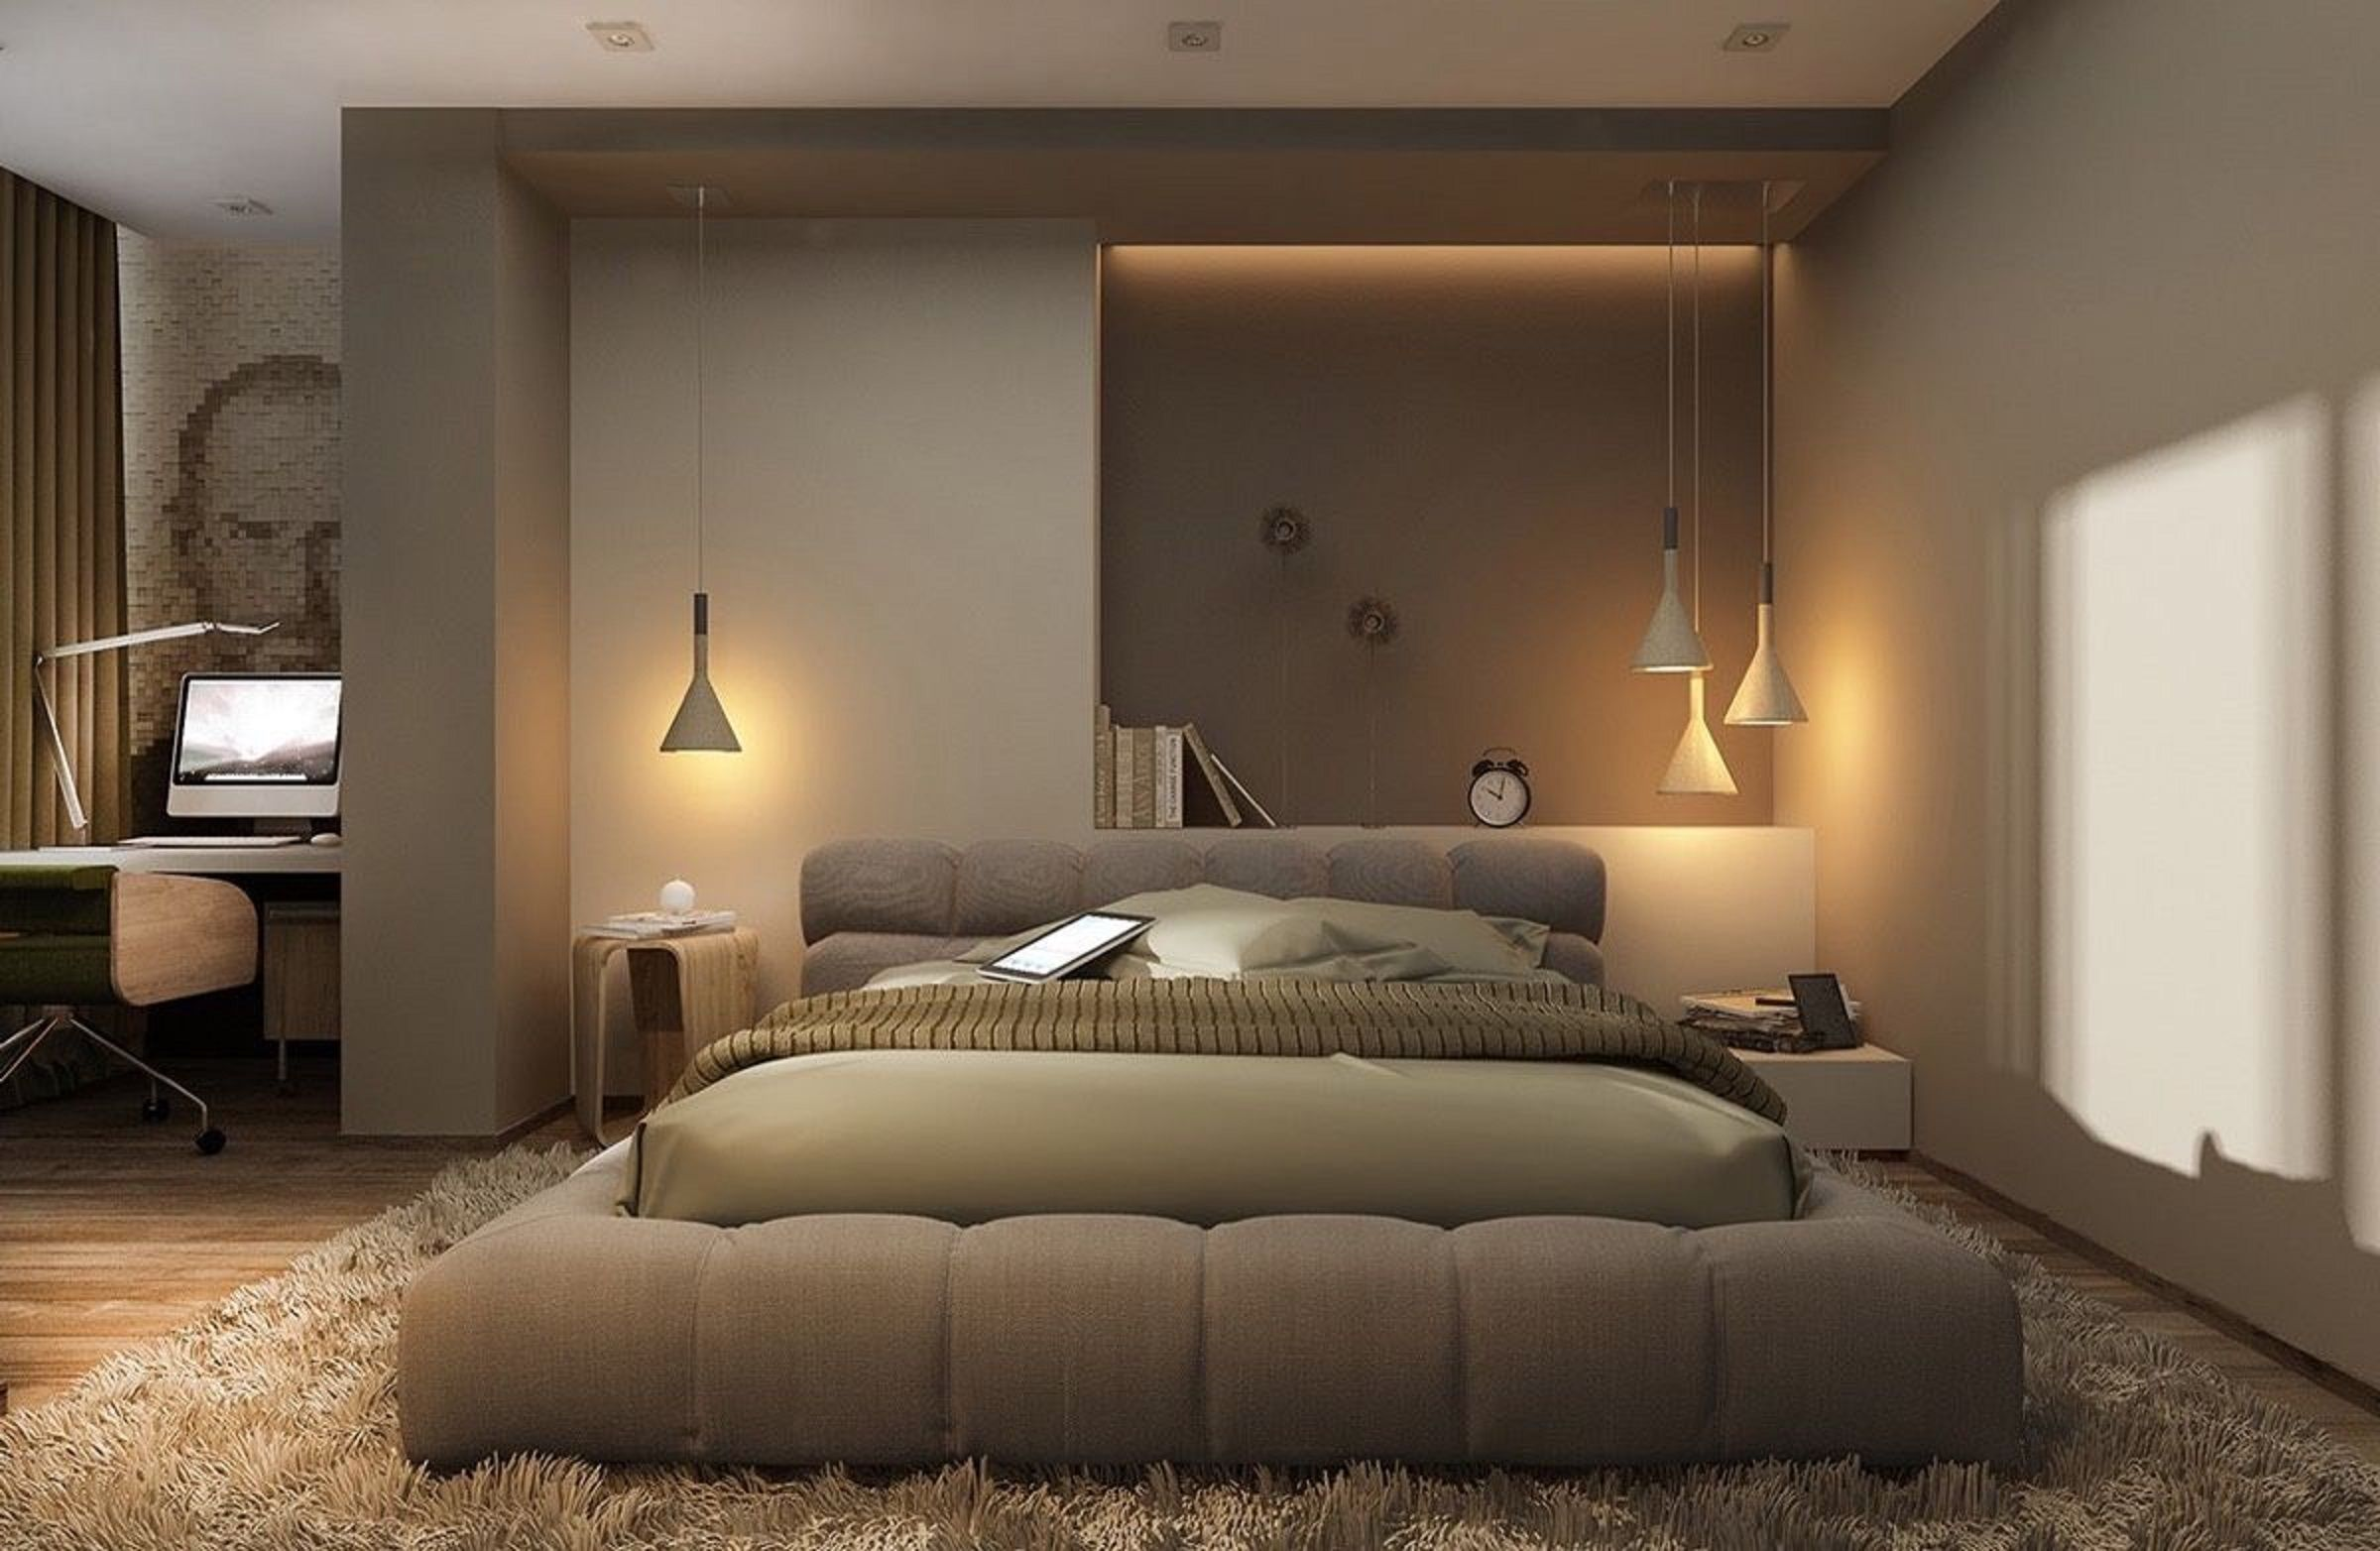 lighting fixtures for bedroom. Bedroom Light Fixtures Are A Delicacy That Provide Warm Ambience To The Room And Create An Environment Of Happiness. 66 Lighting Tips Ideas For D